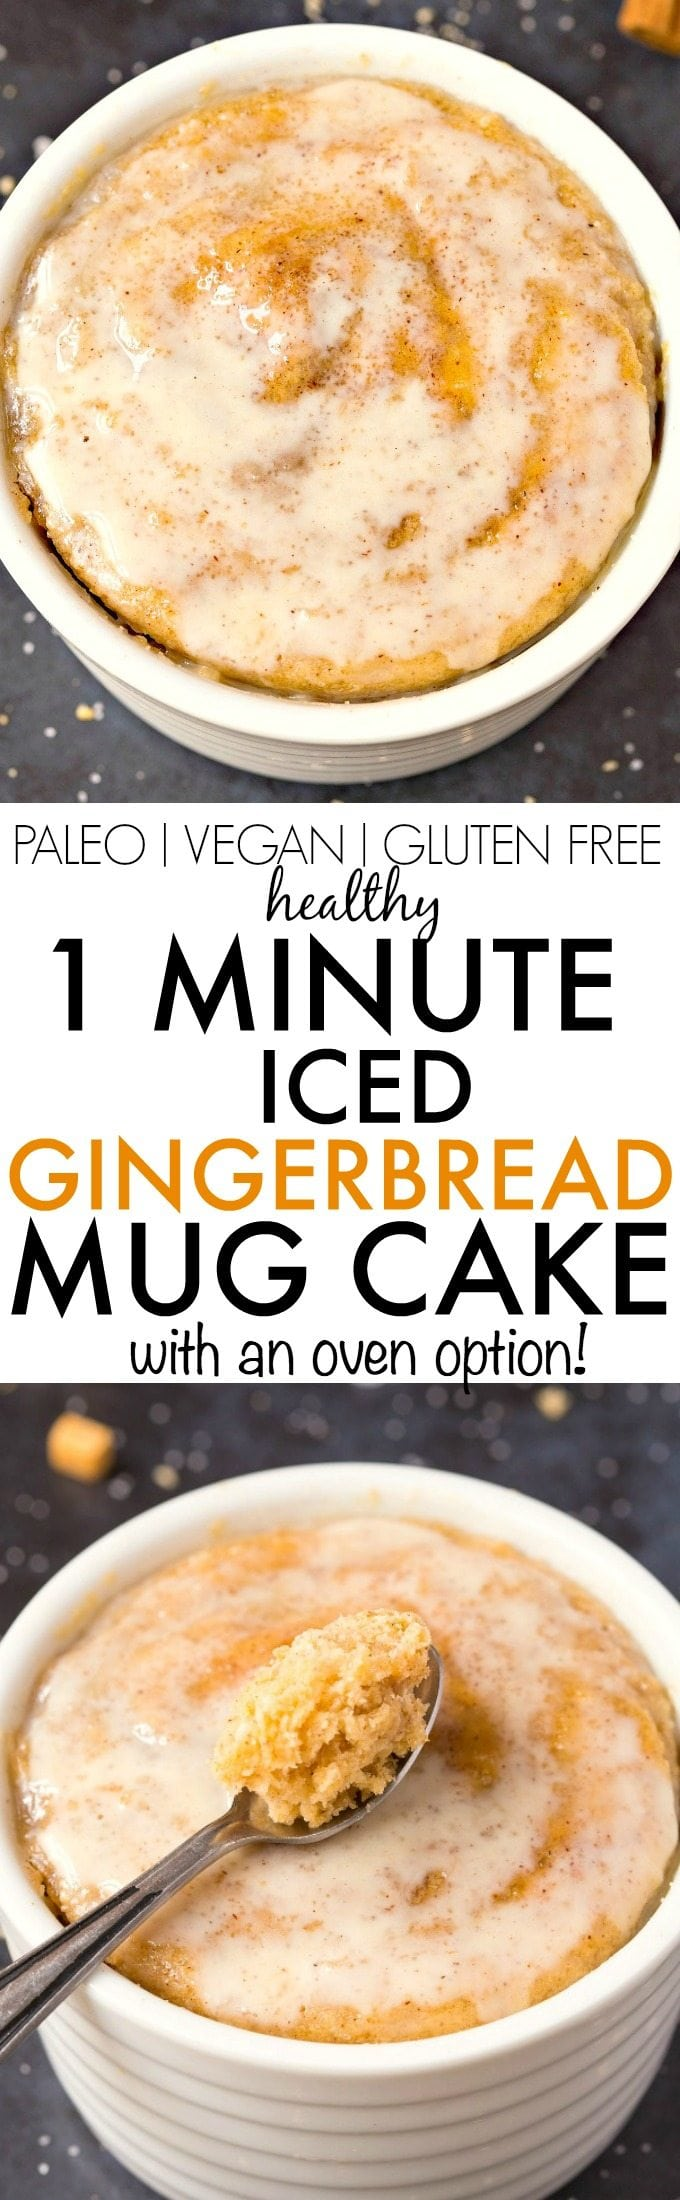 Healthy ONE MINUTE Iced Gingerbread Mug Cake- Quick, Easy, Delicious and with an oven option too, it's light, fluffy and tender- Made with NO butter, it's oil free, sugar free and low calorie! {vegan, gluten free, paleo recipe}- thebigmansworld.com